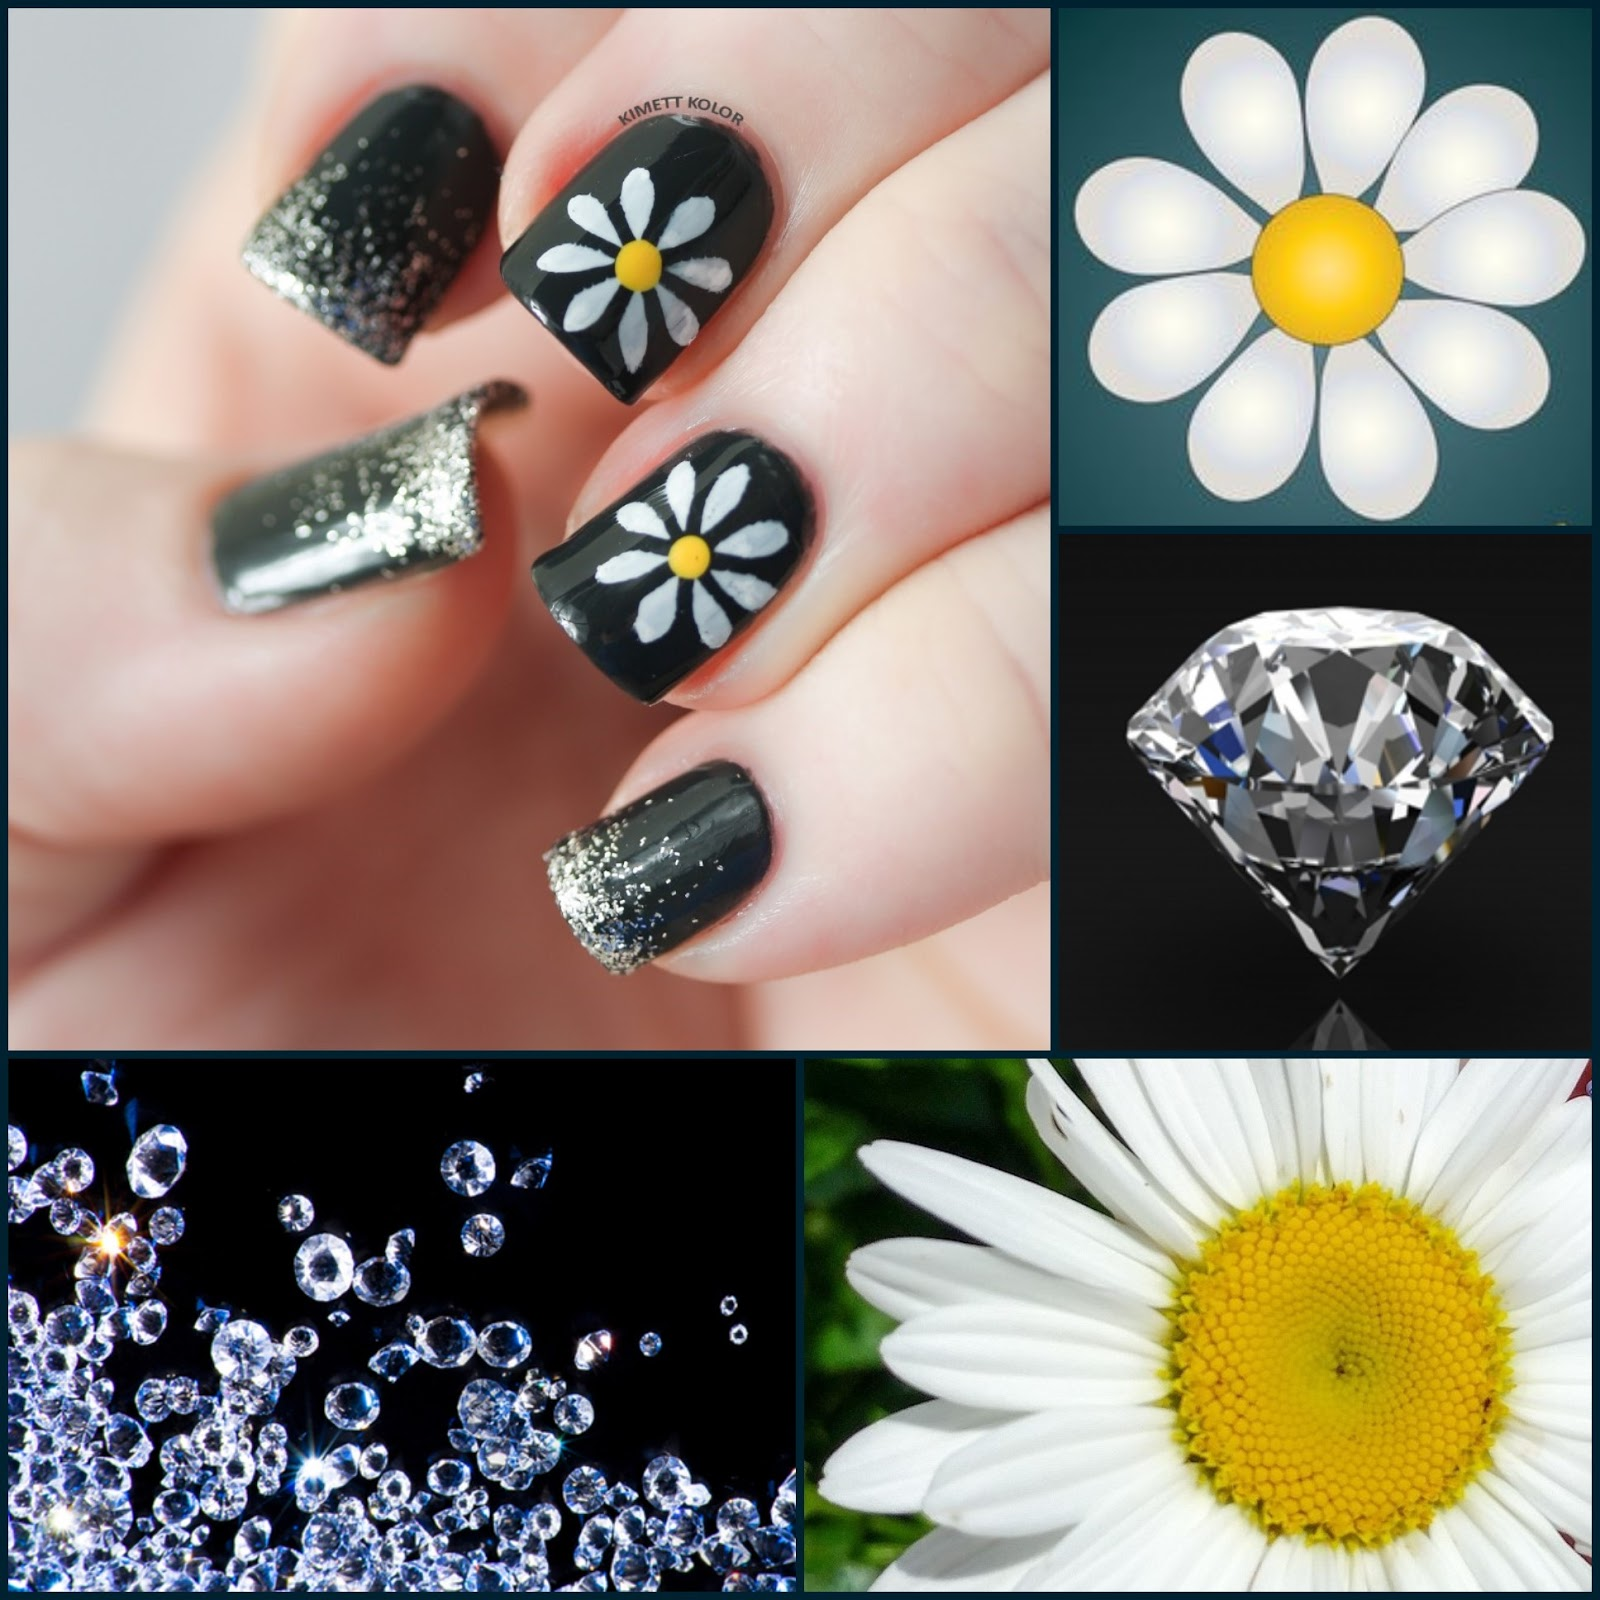 Diamonds and Daisy April Nail Art by KimettKolor